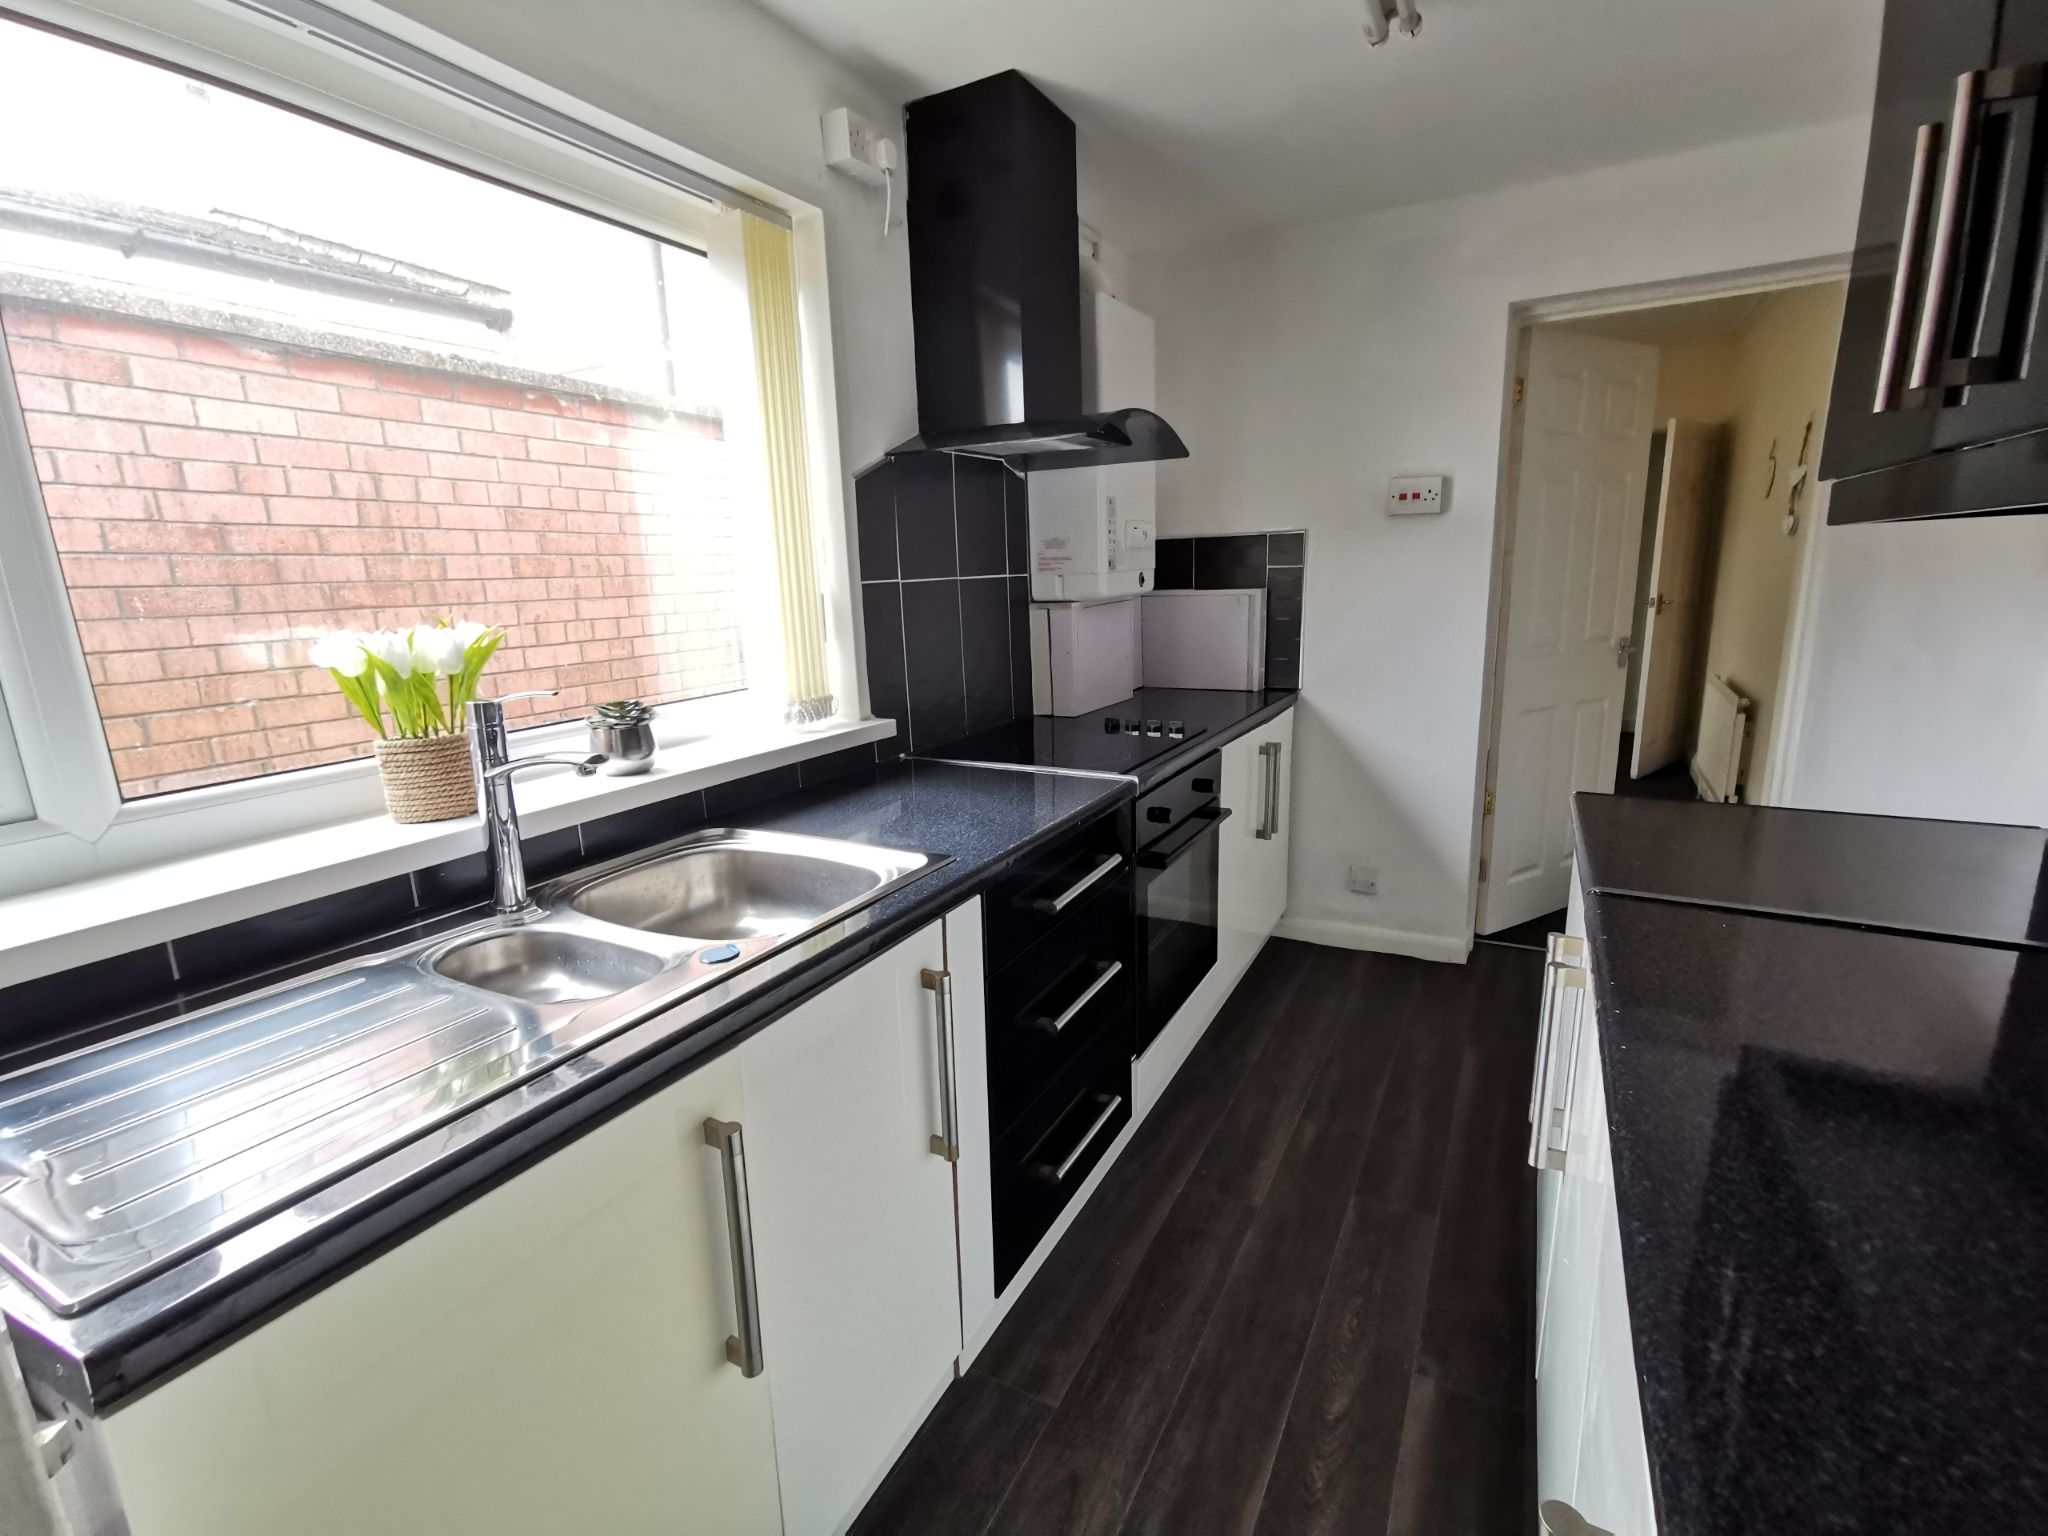 2 bedroom mid terraced house For Sale in Allerdale - Photograph 4.